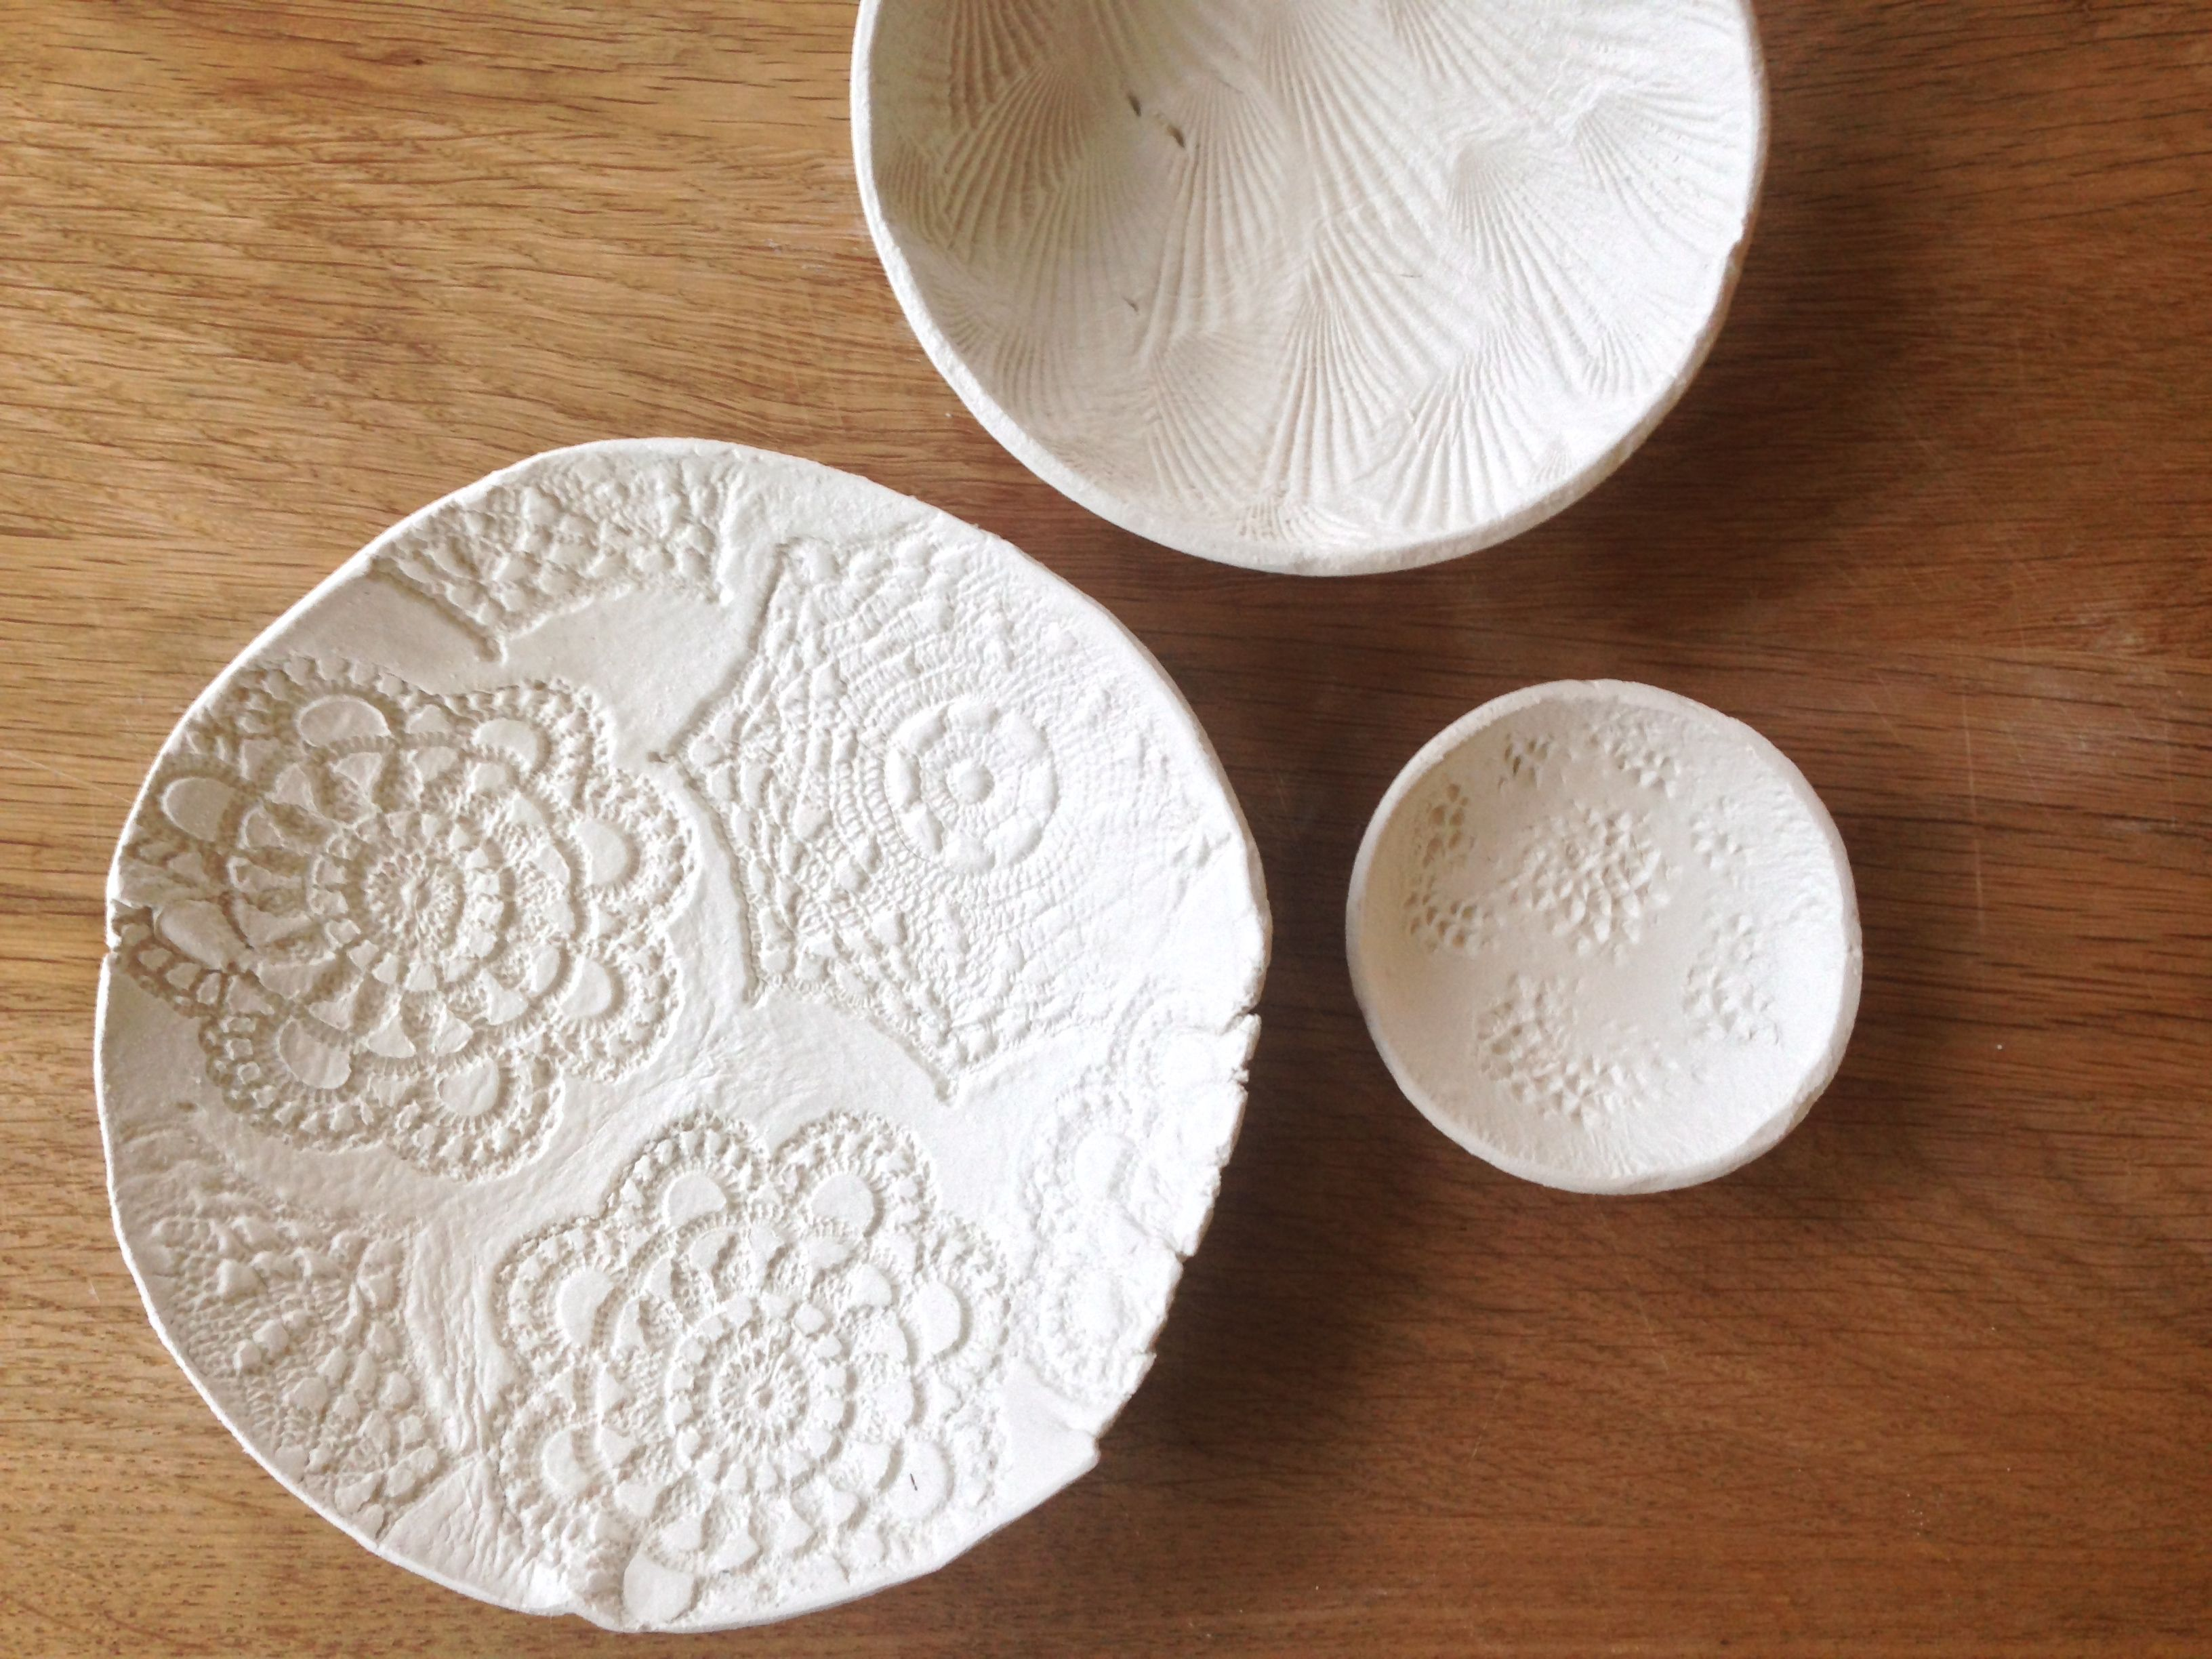 Air Dry Clay Bowls Made By Embossing Crochet Coasters